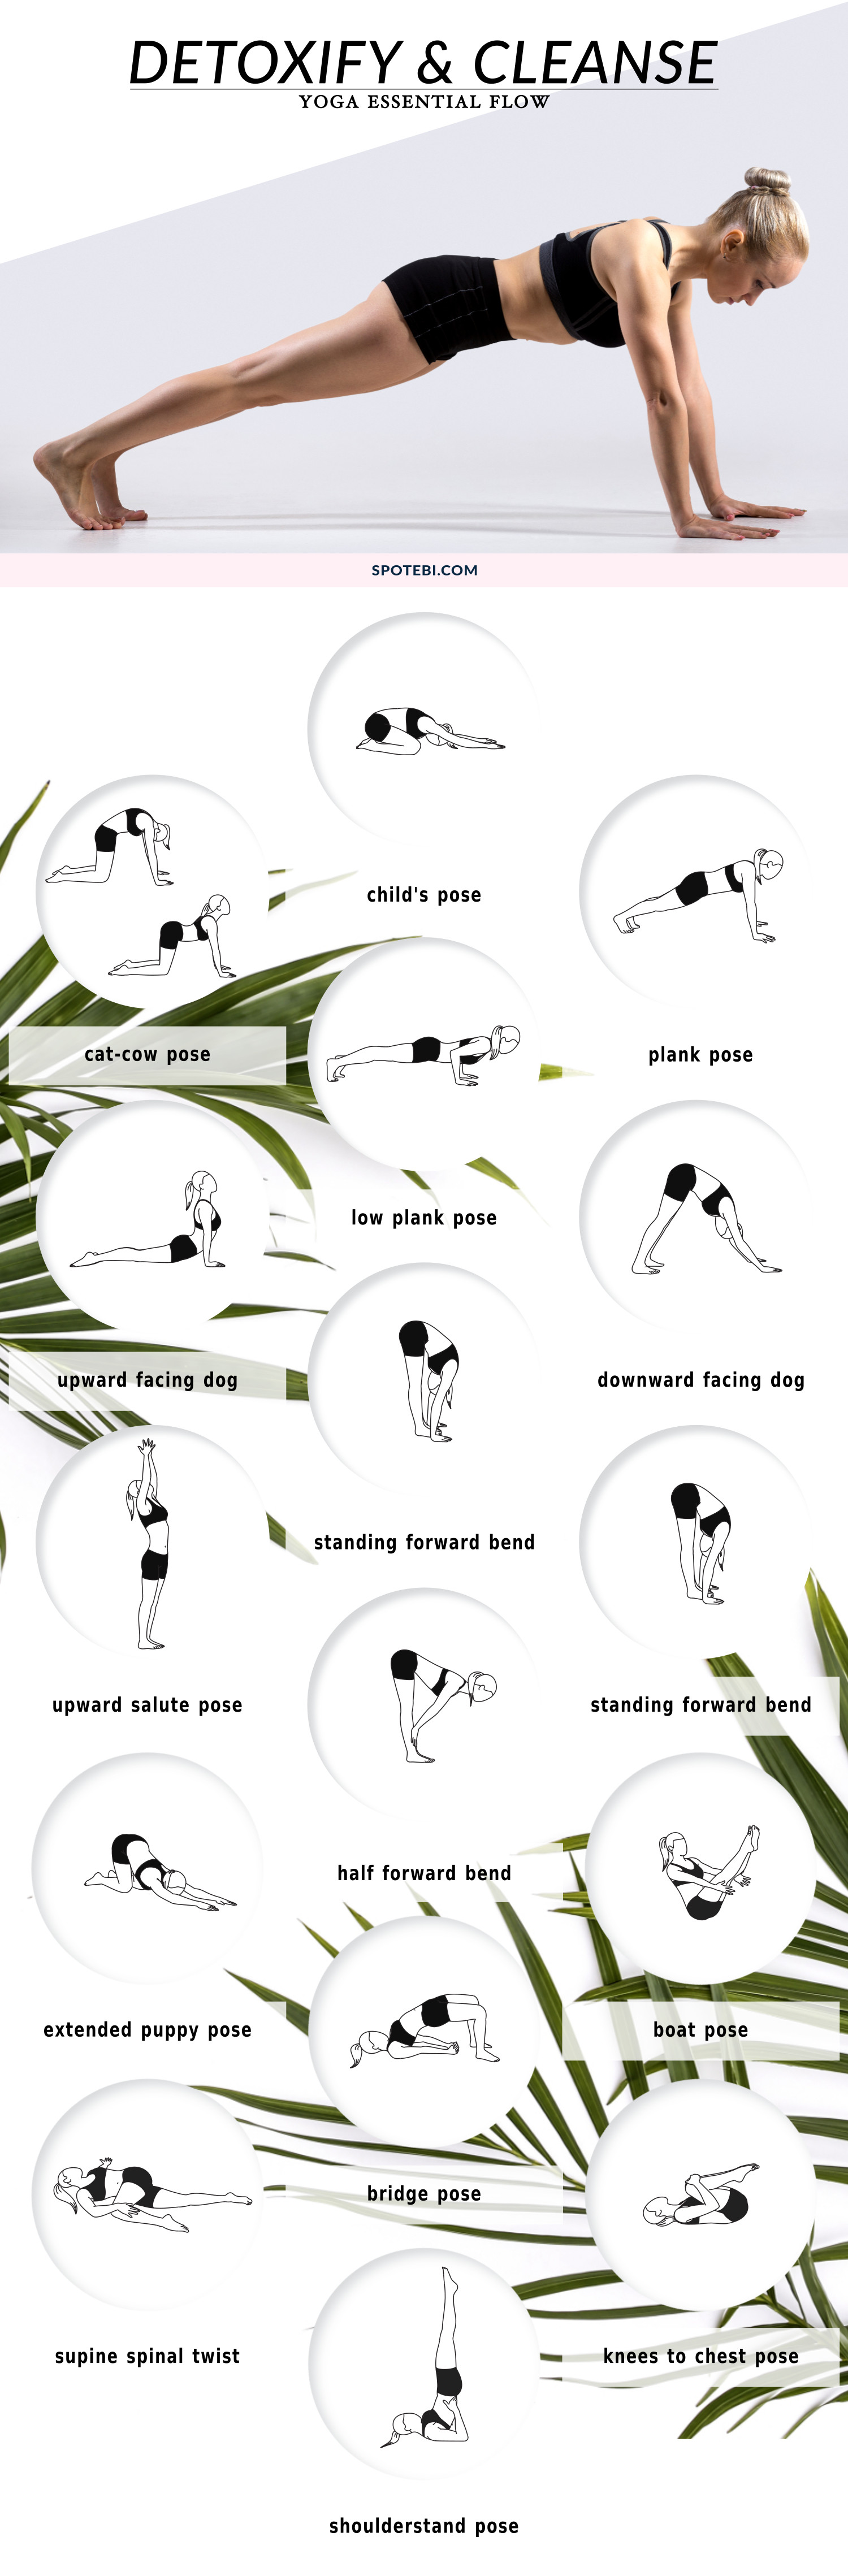 Cleanse your body and regain energy, naturally, with this yoga essential flow. Feel better after a night of partying or an indulgent vacation, detoxify your digestive system, and get back on track! http://www.spotebi.com/yoga-sequences/detoxify-cleanse/